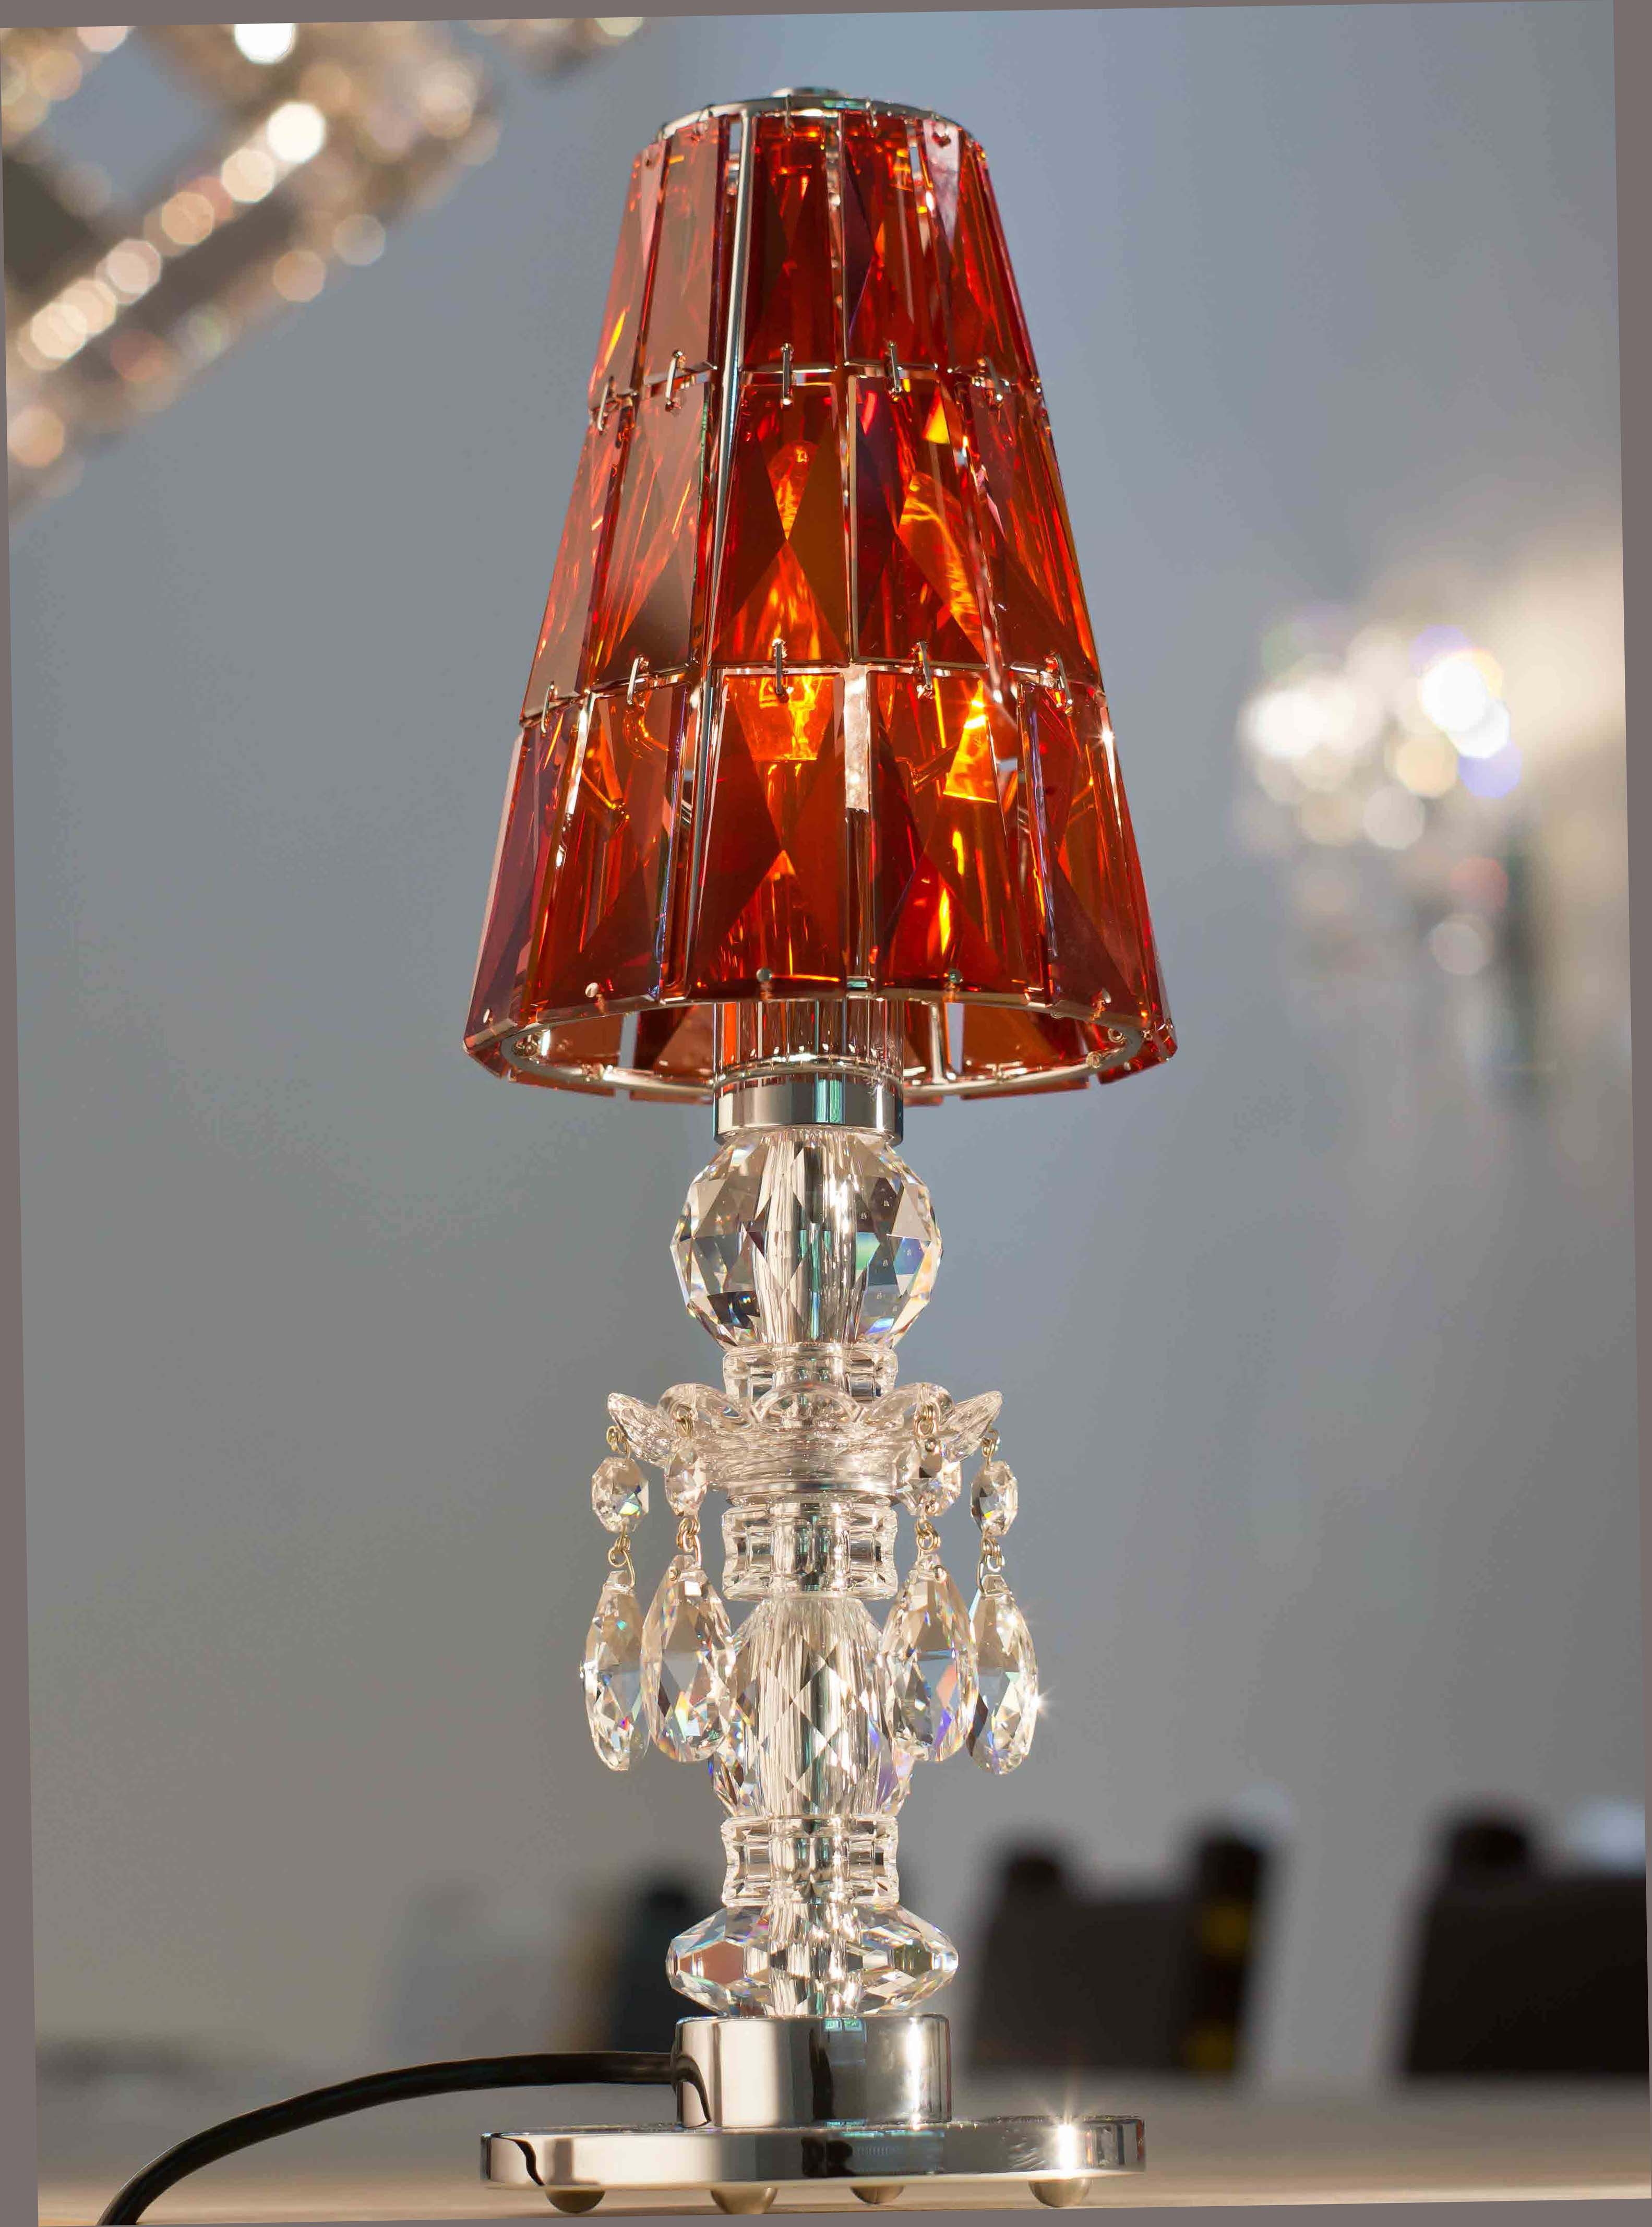 windfall chandeliers lula table lamp with red magma crystal shade - Chandelier Table Lamp